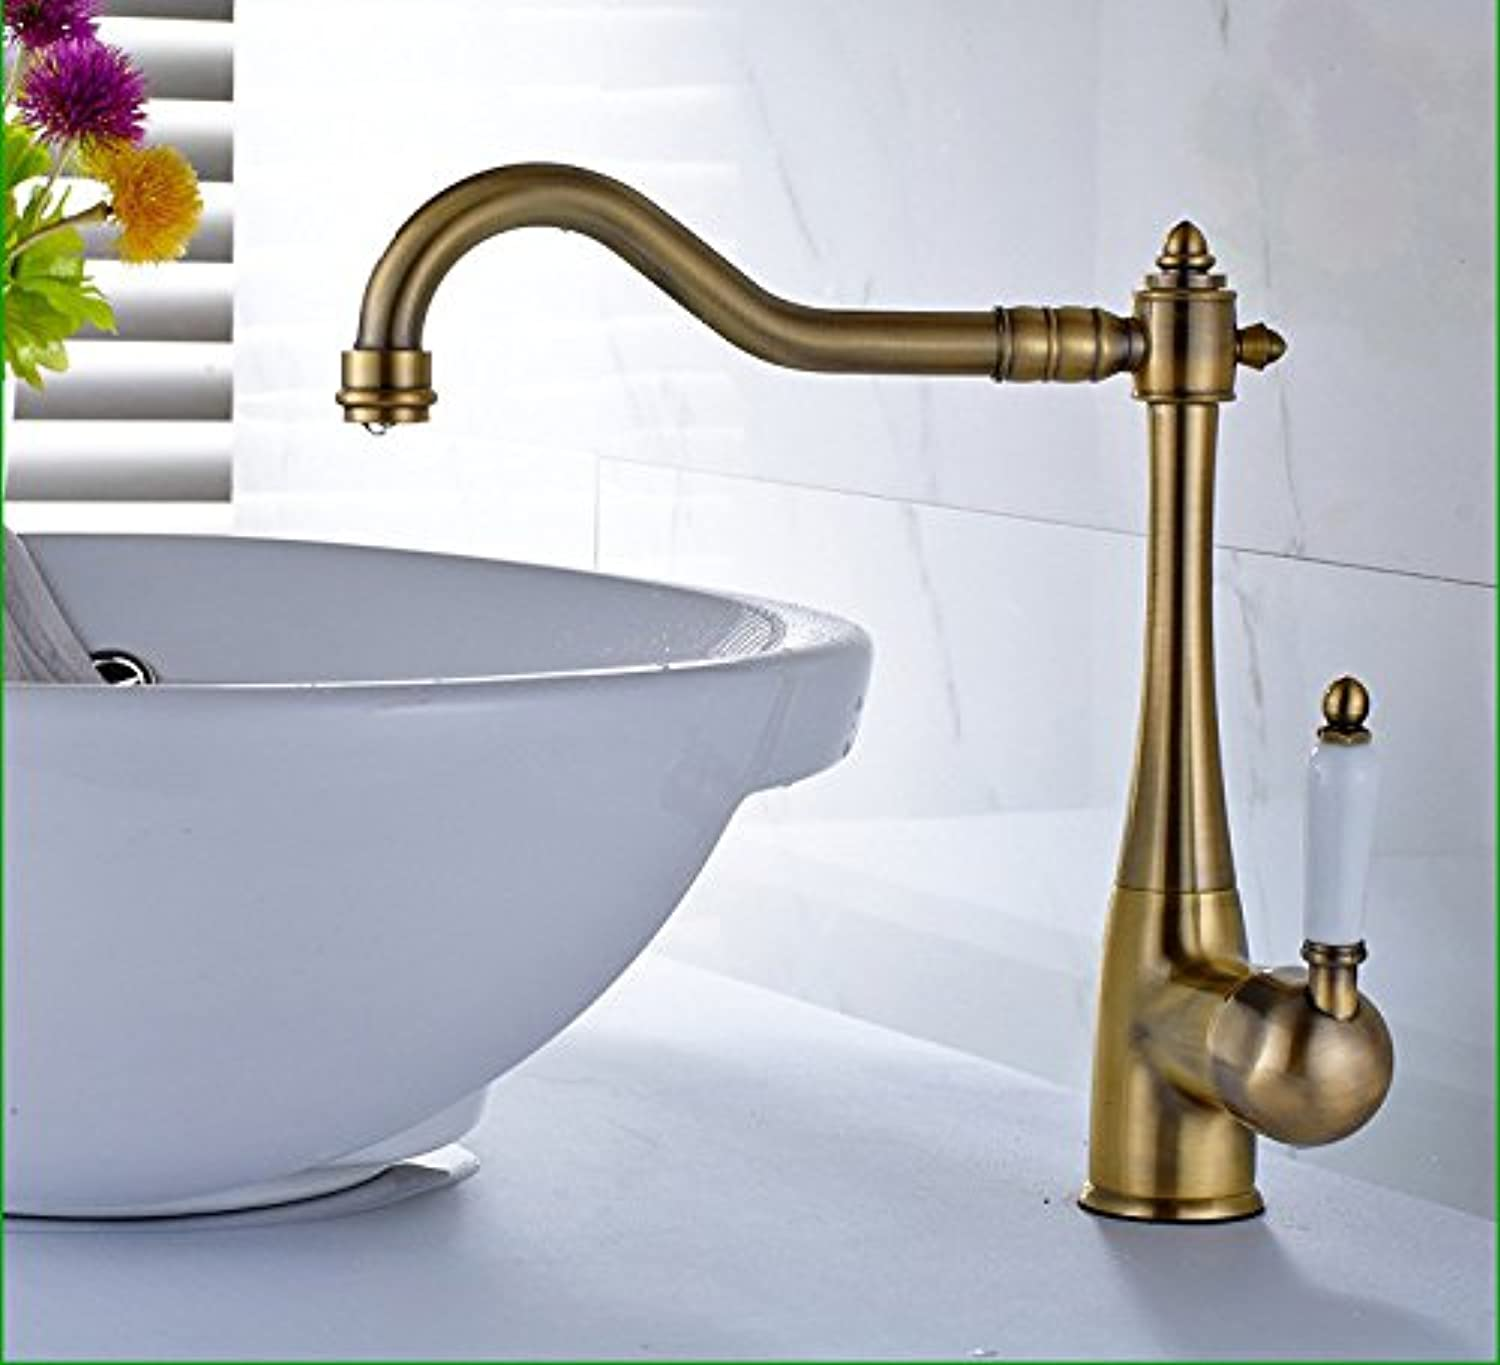 Hlluya Professional Sink Mixer Tap Kitchen Faucet The brass faucets green ceramic handle to redate the hot water tap retro-basin surface basin mixer